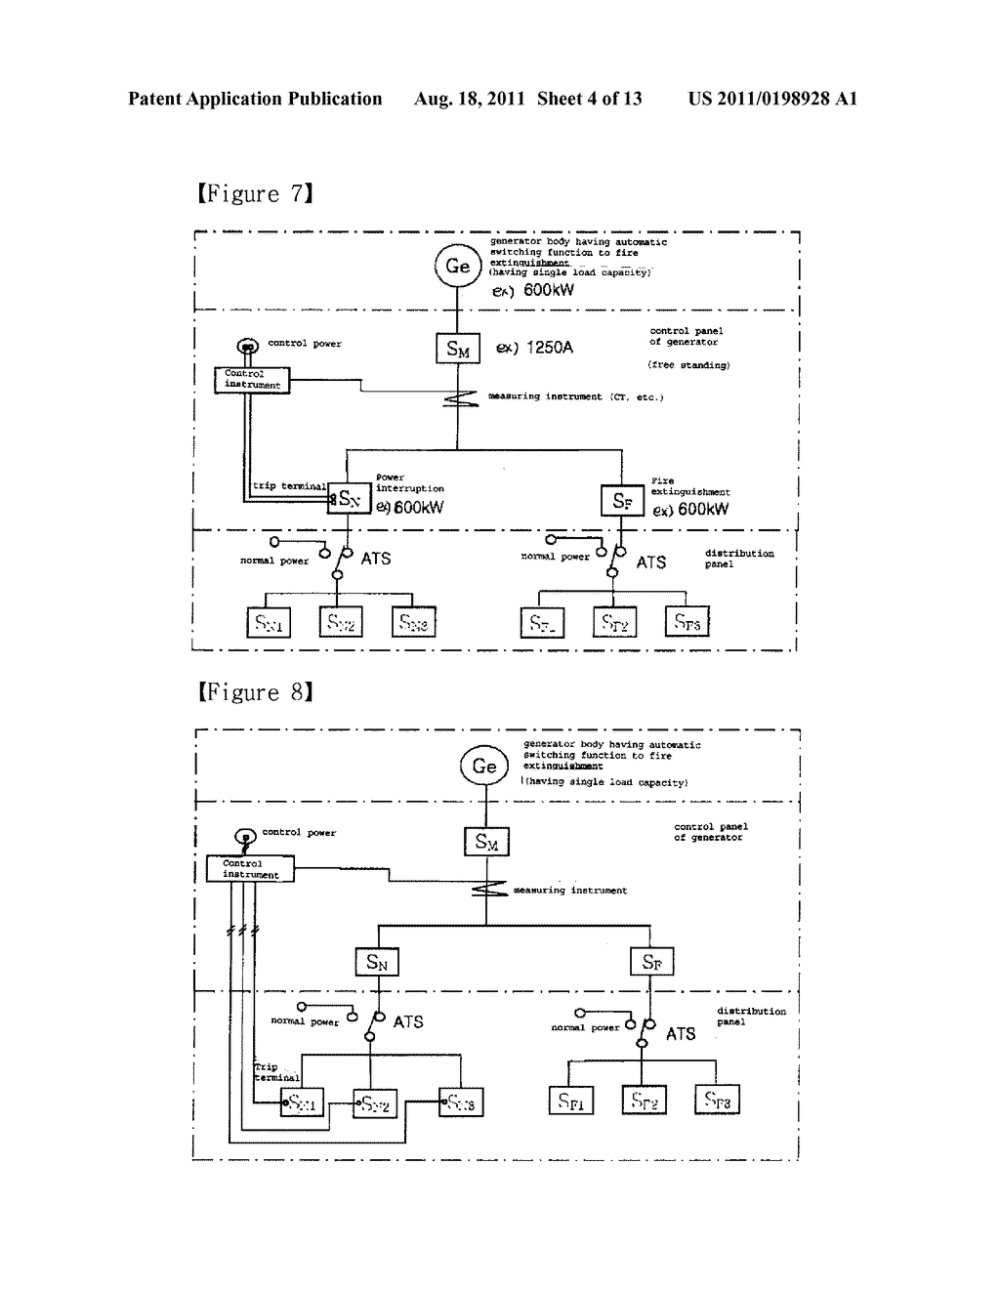 medium resolution of emergency generator power system with reserved fire protection power diagram schematic and image 05